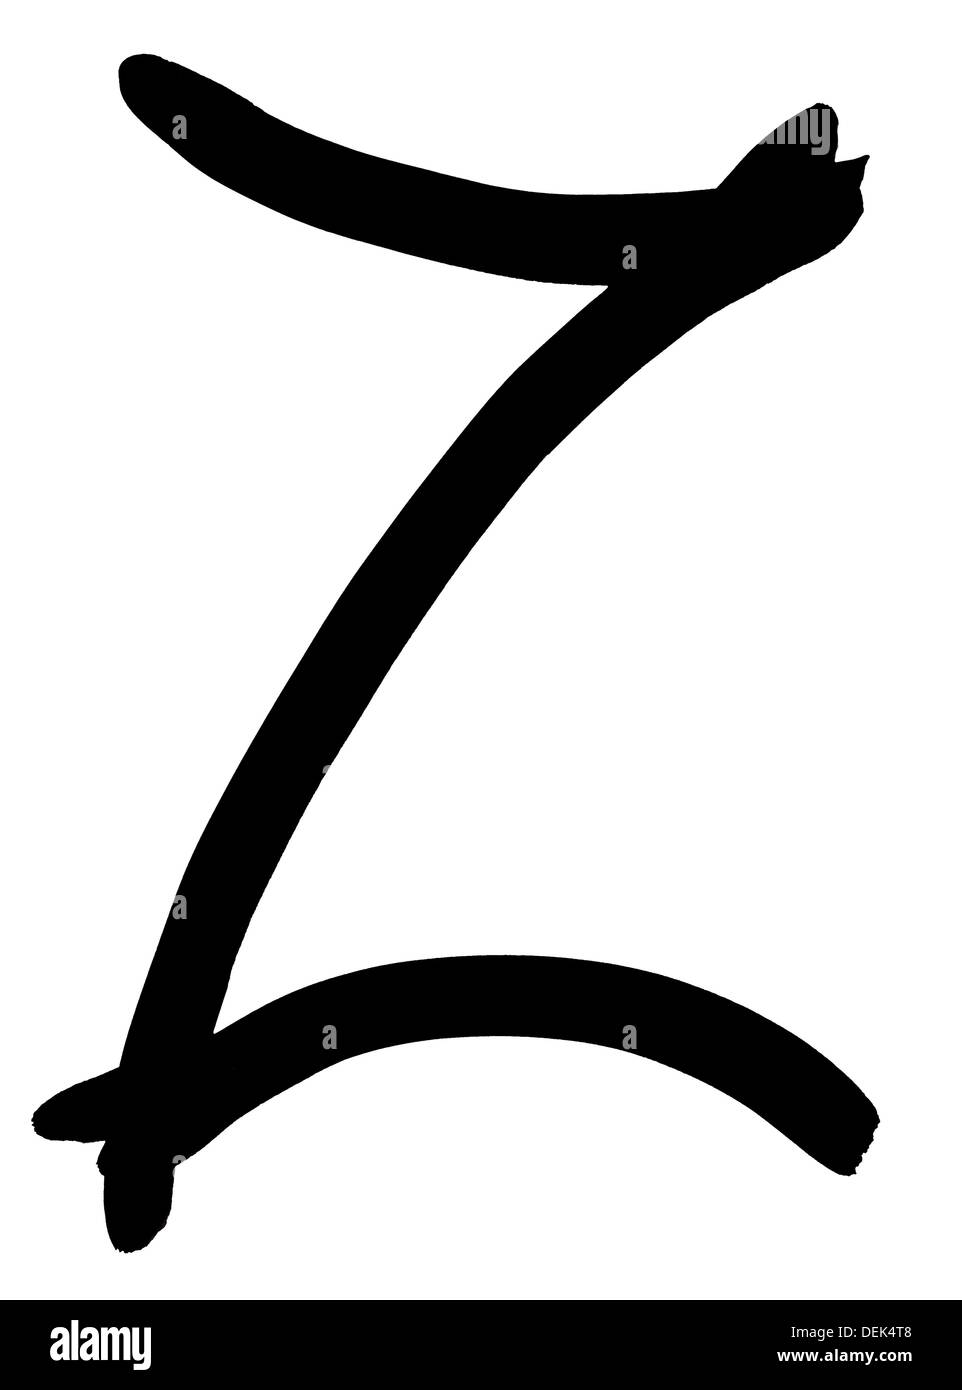 Capital Letter Z Black And White Stock Photos Images Alamy